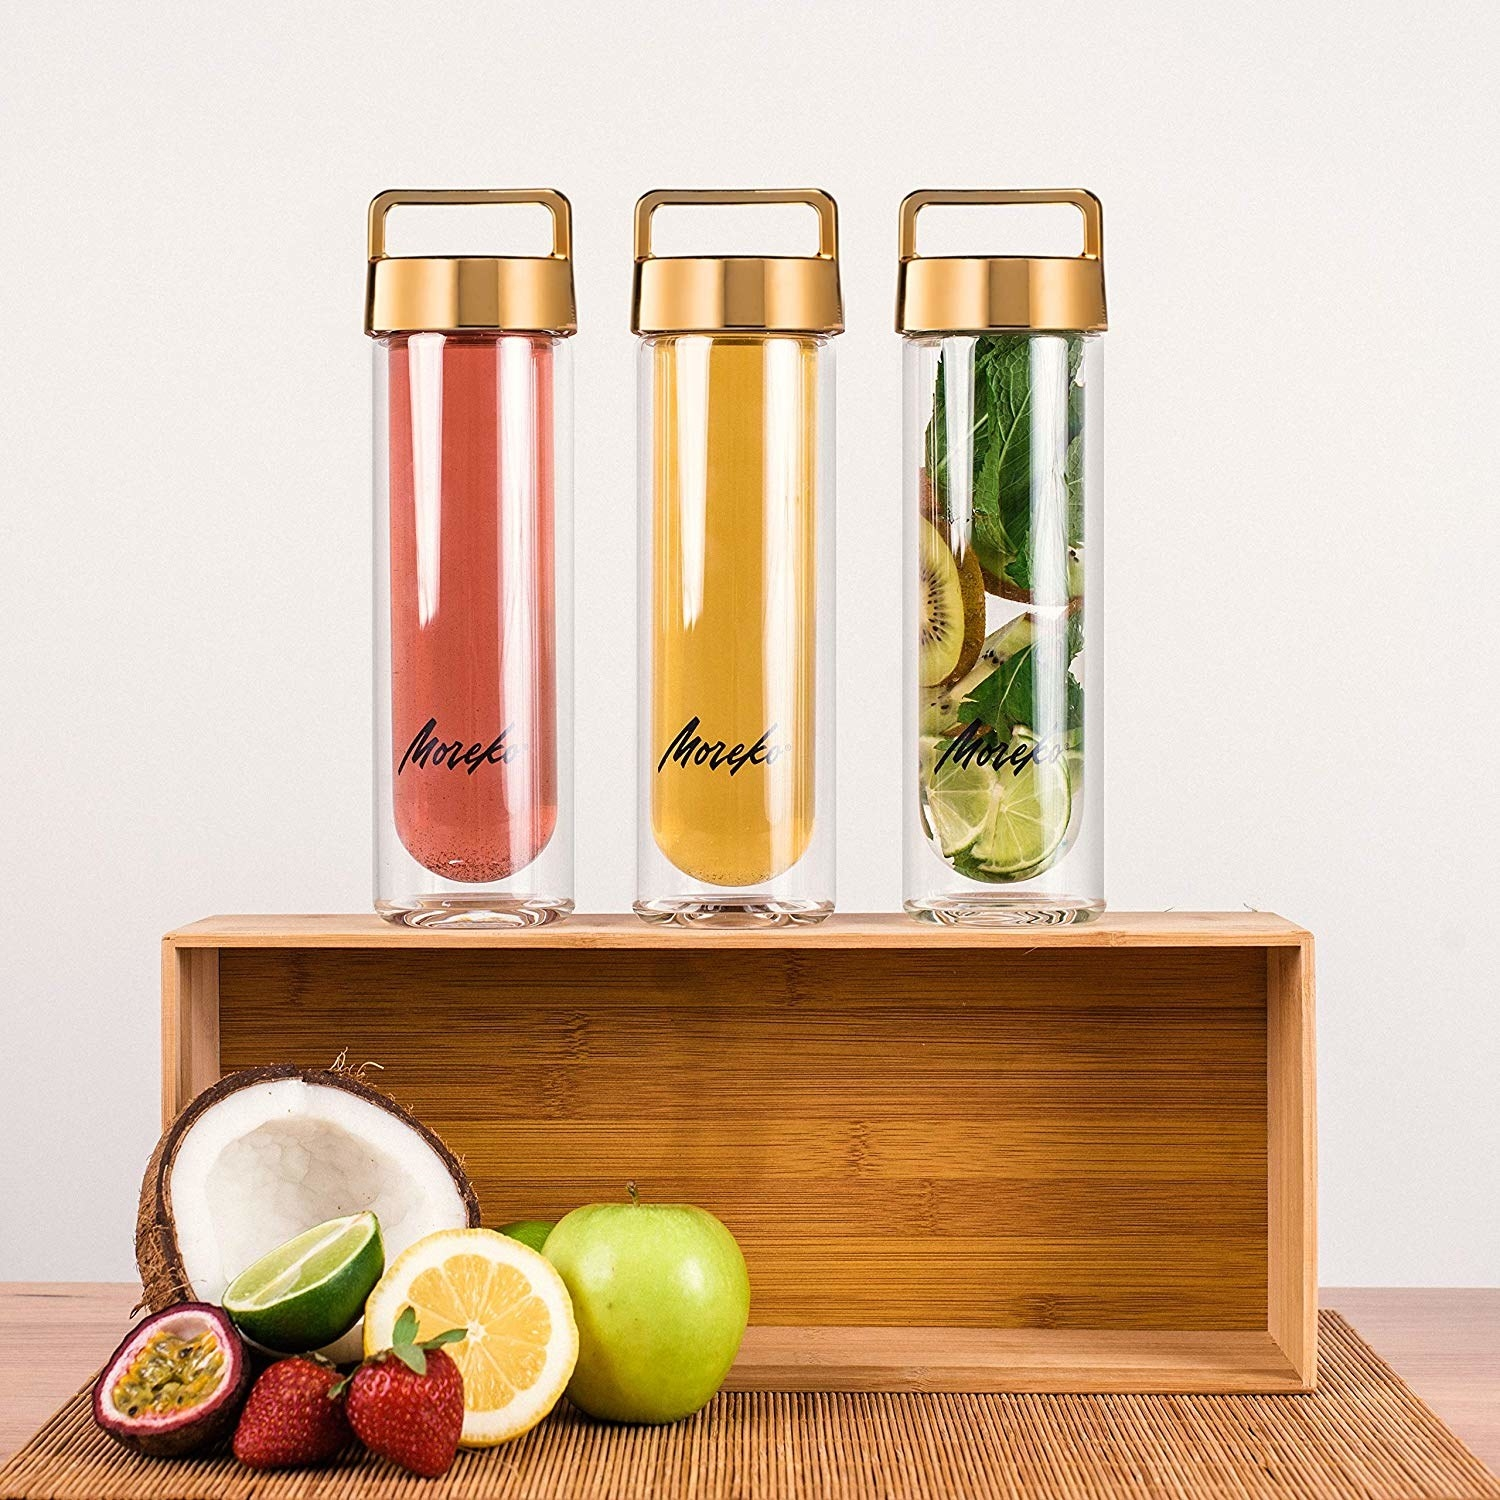 Three water bottles with gold lids, each holding a colorful drink and/or fruit